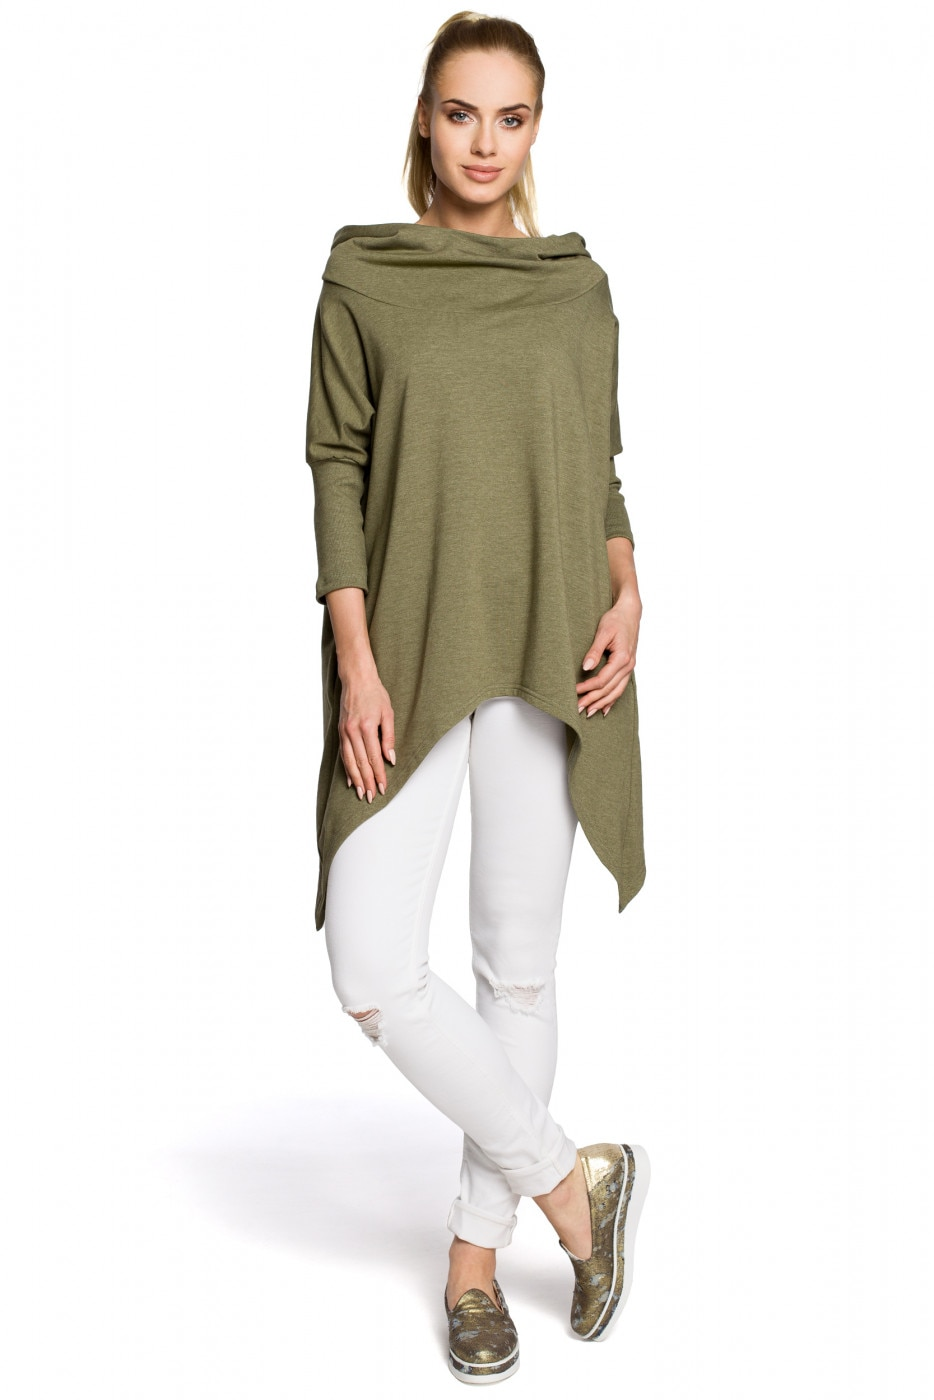 Made Of Emotion Woman's Cape M207 Khaki